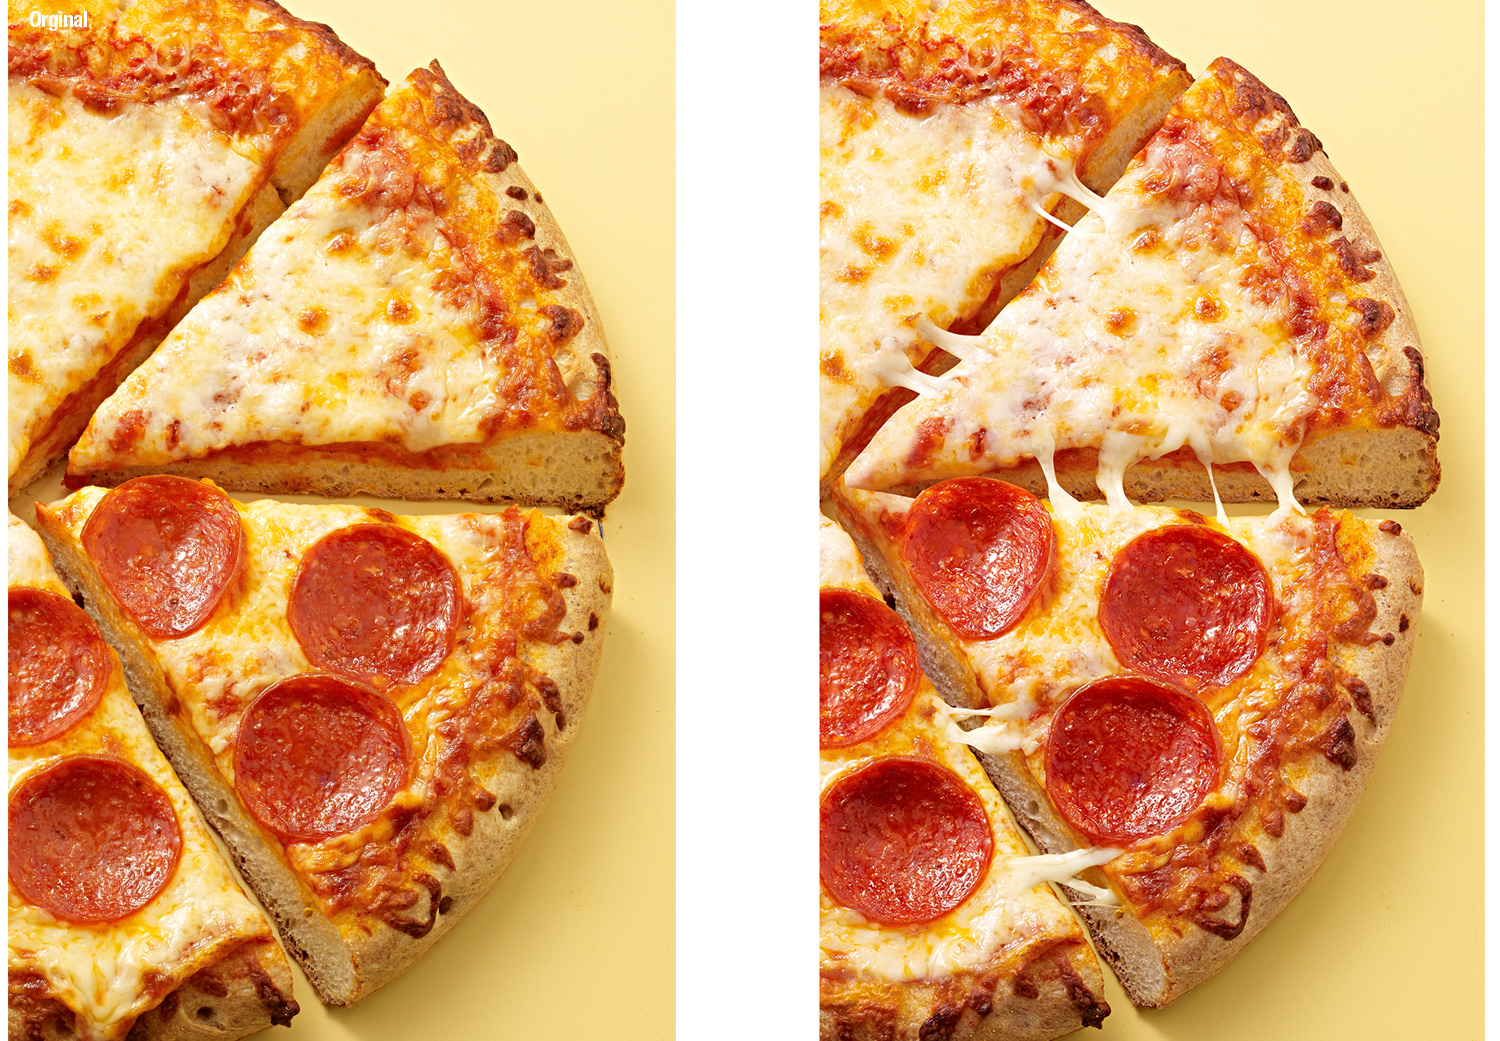 Retouching-pizza.jpg